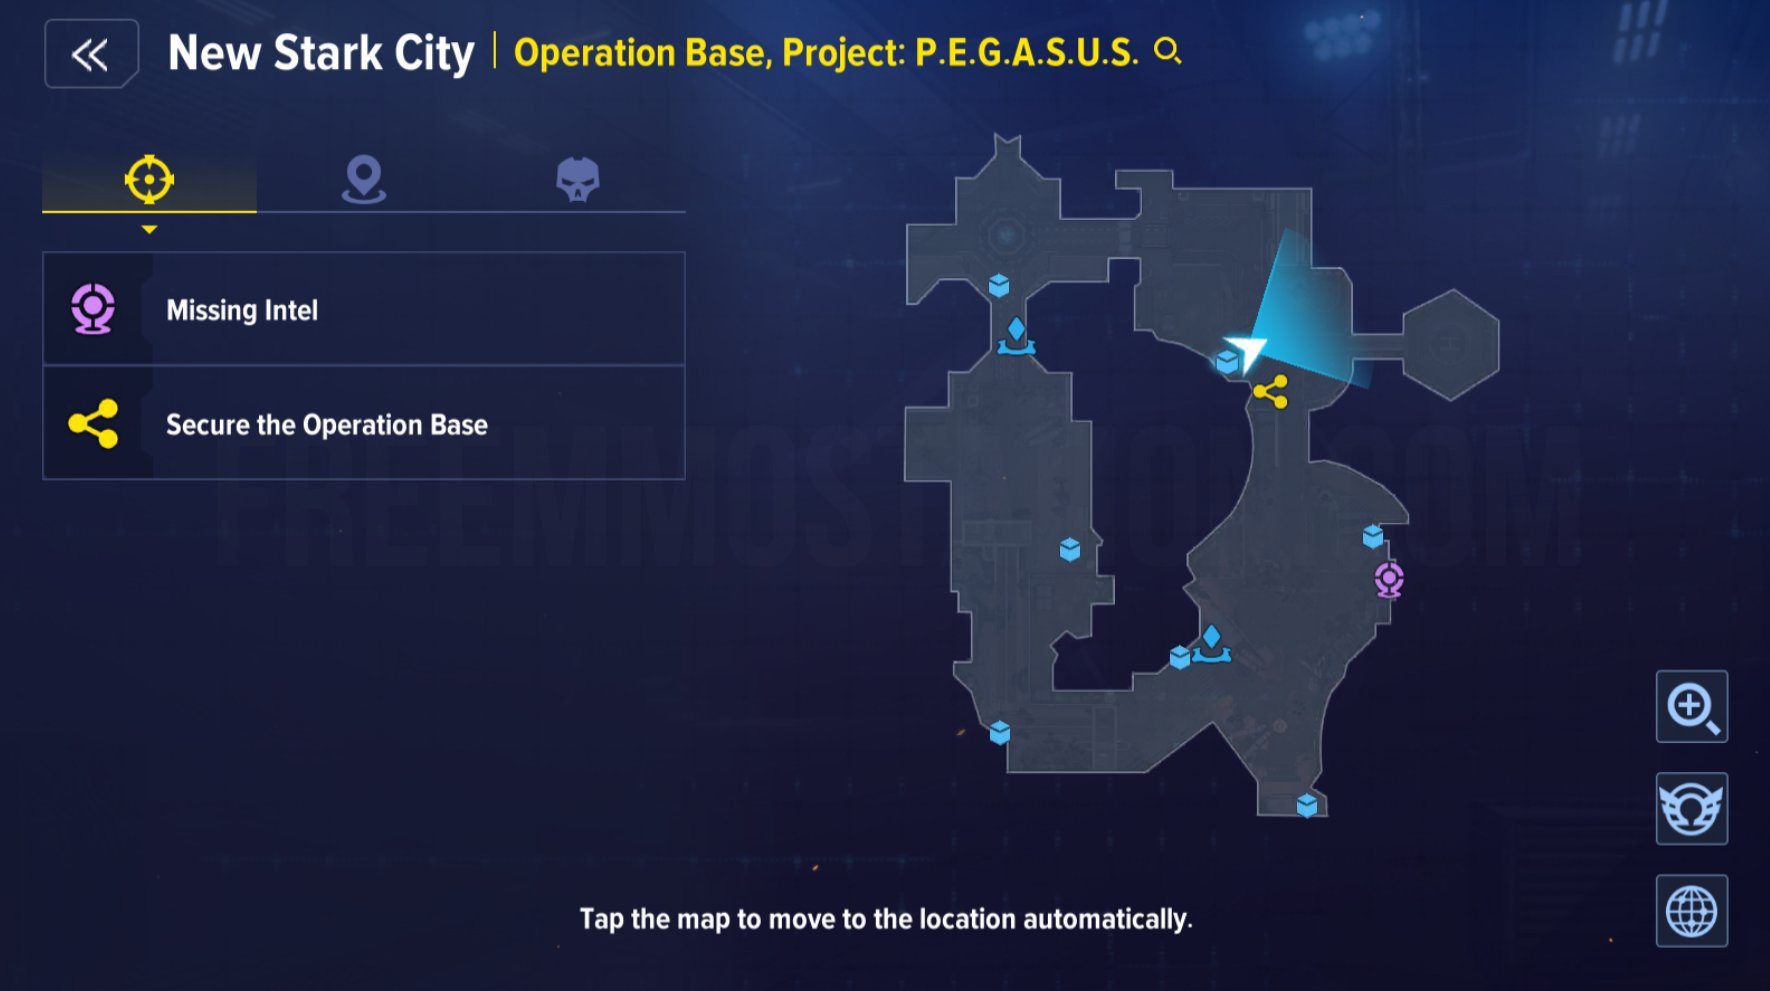 Collectibles New Stark City Operation Base Project PEGASUS 7 Total complete